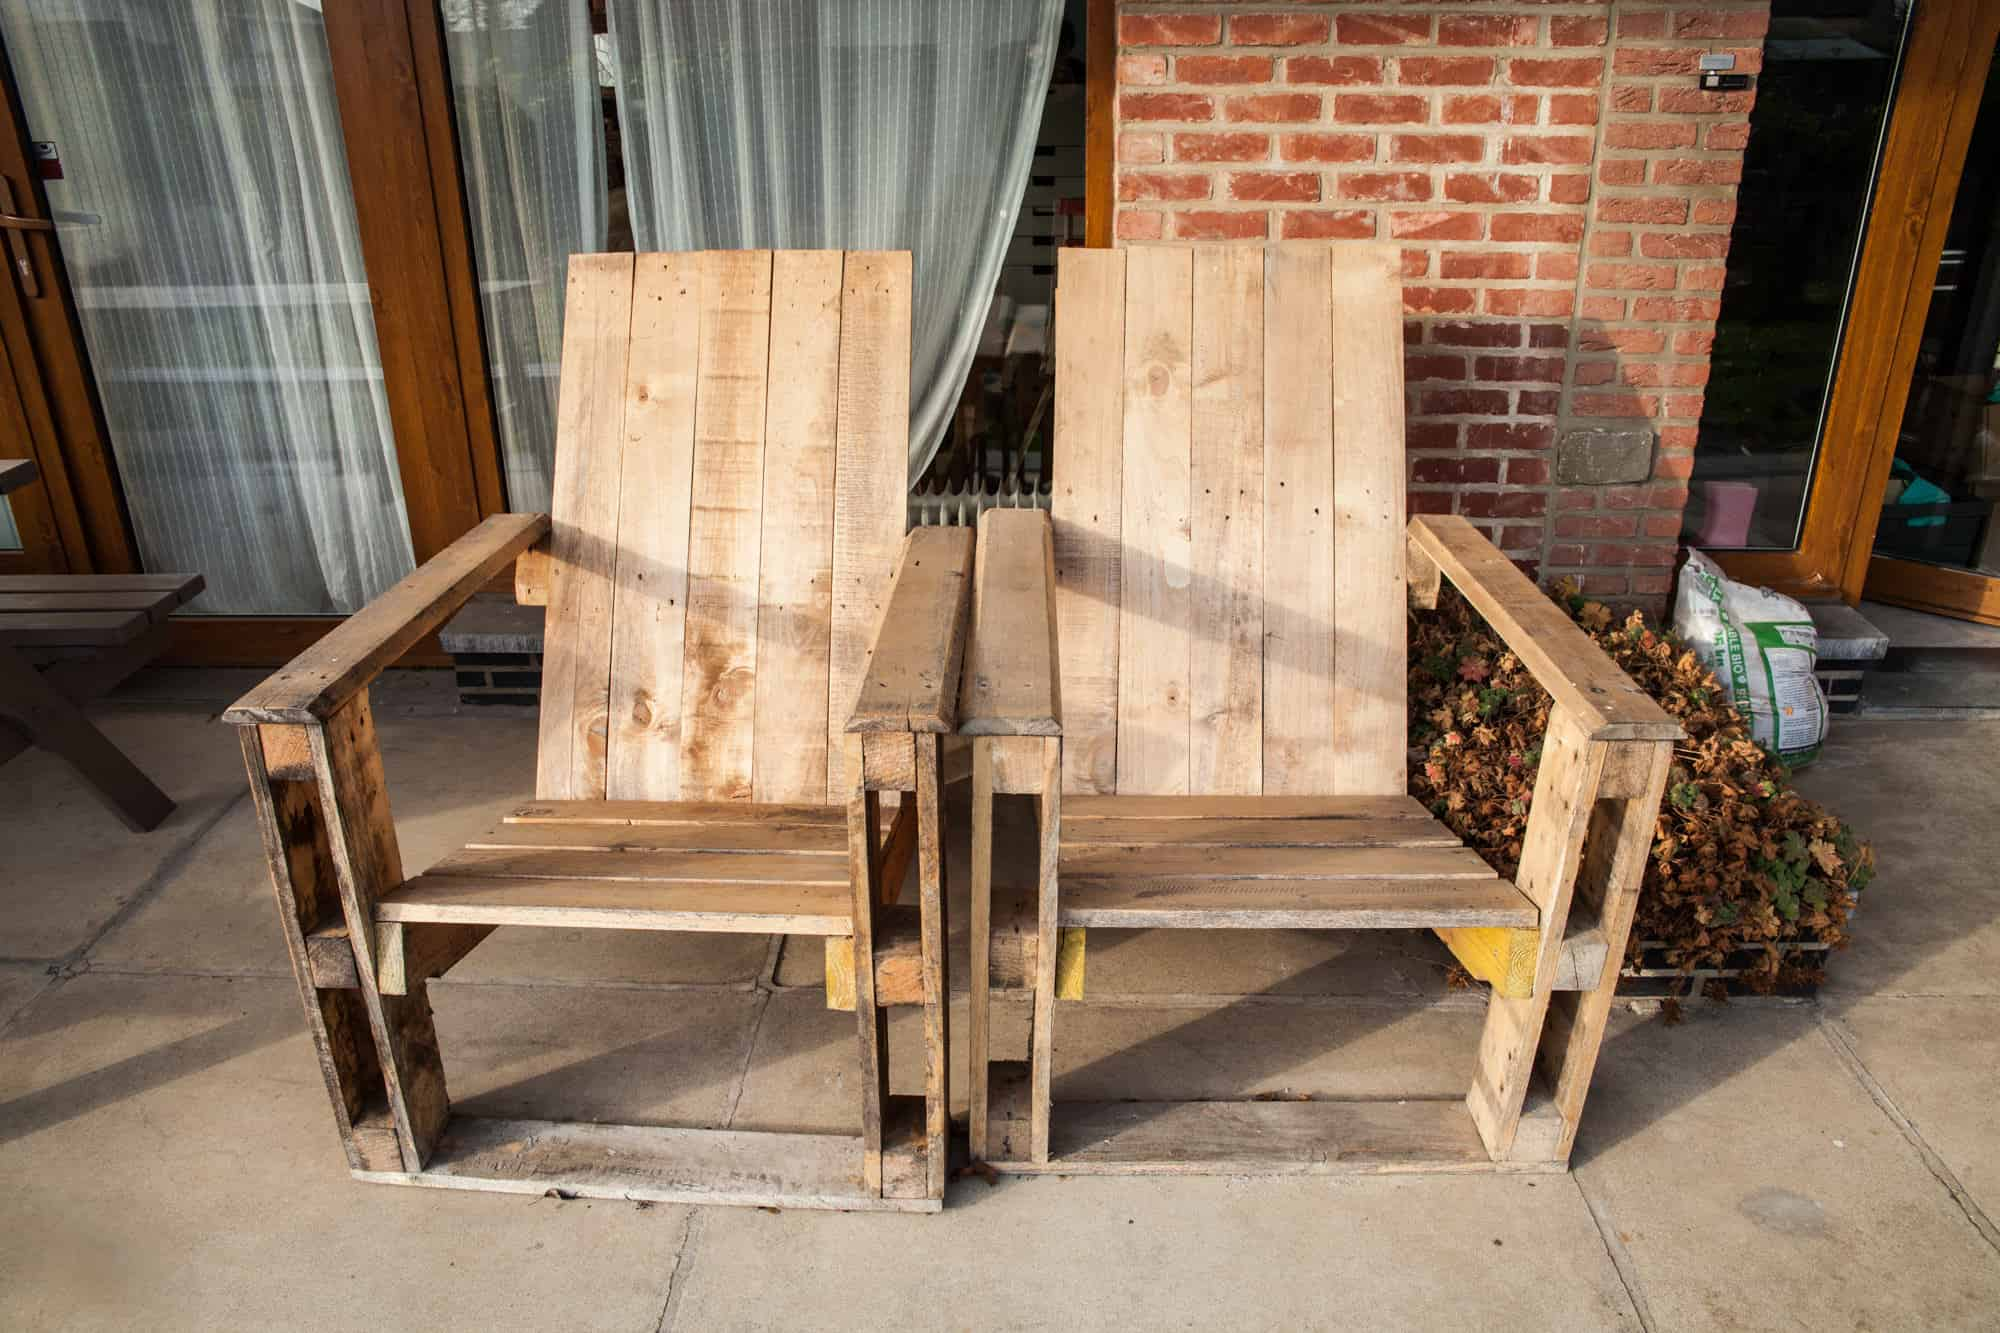 Pallet Benches, Pallet Chairs & Stools • Pallet Ideas • 1001 Pallets